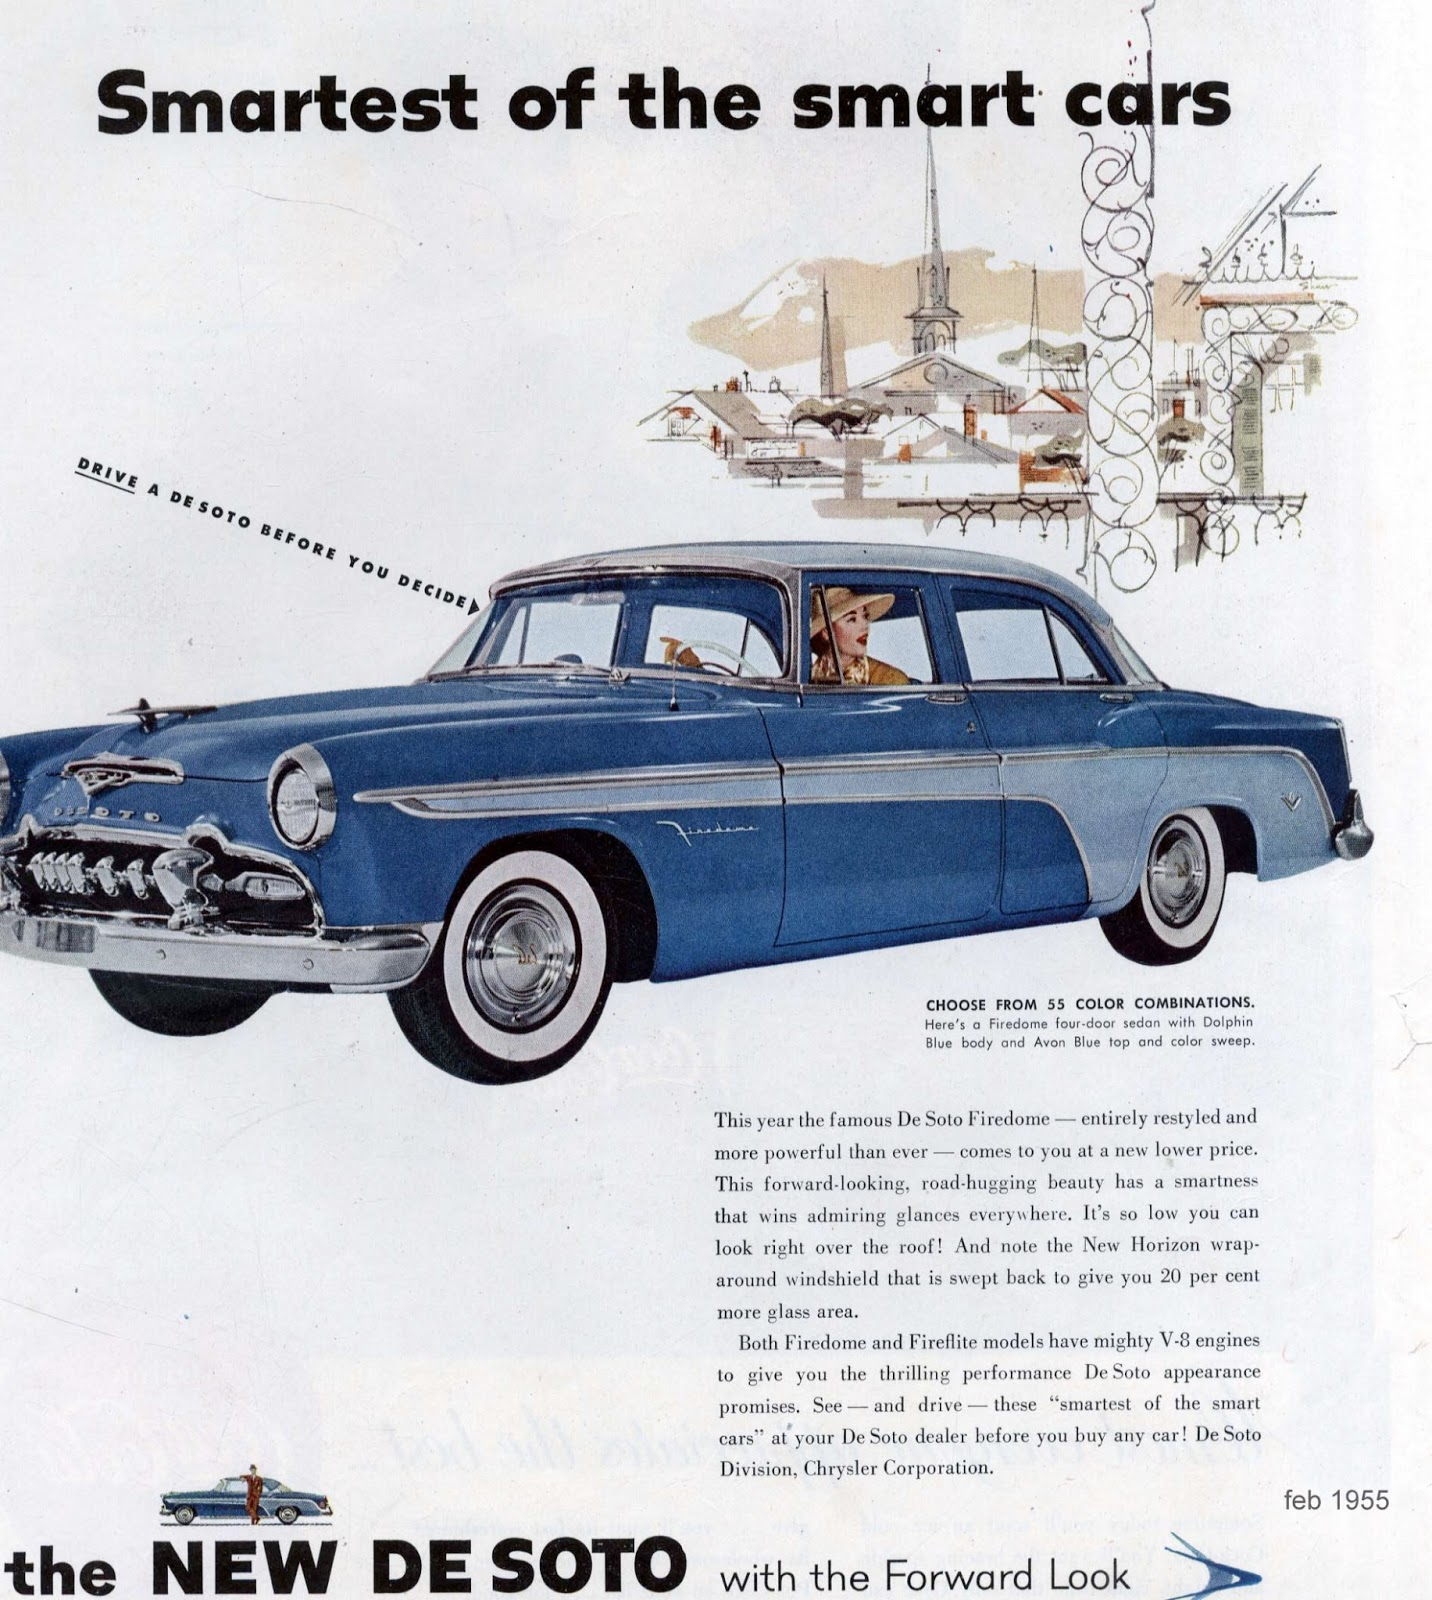 The Visual Primer Of Advertising Cliches : Smartest Of The